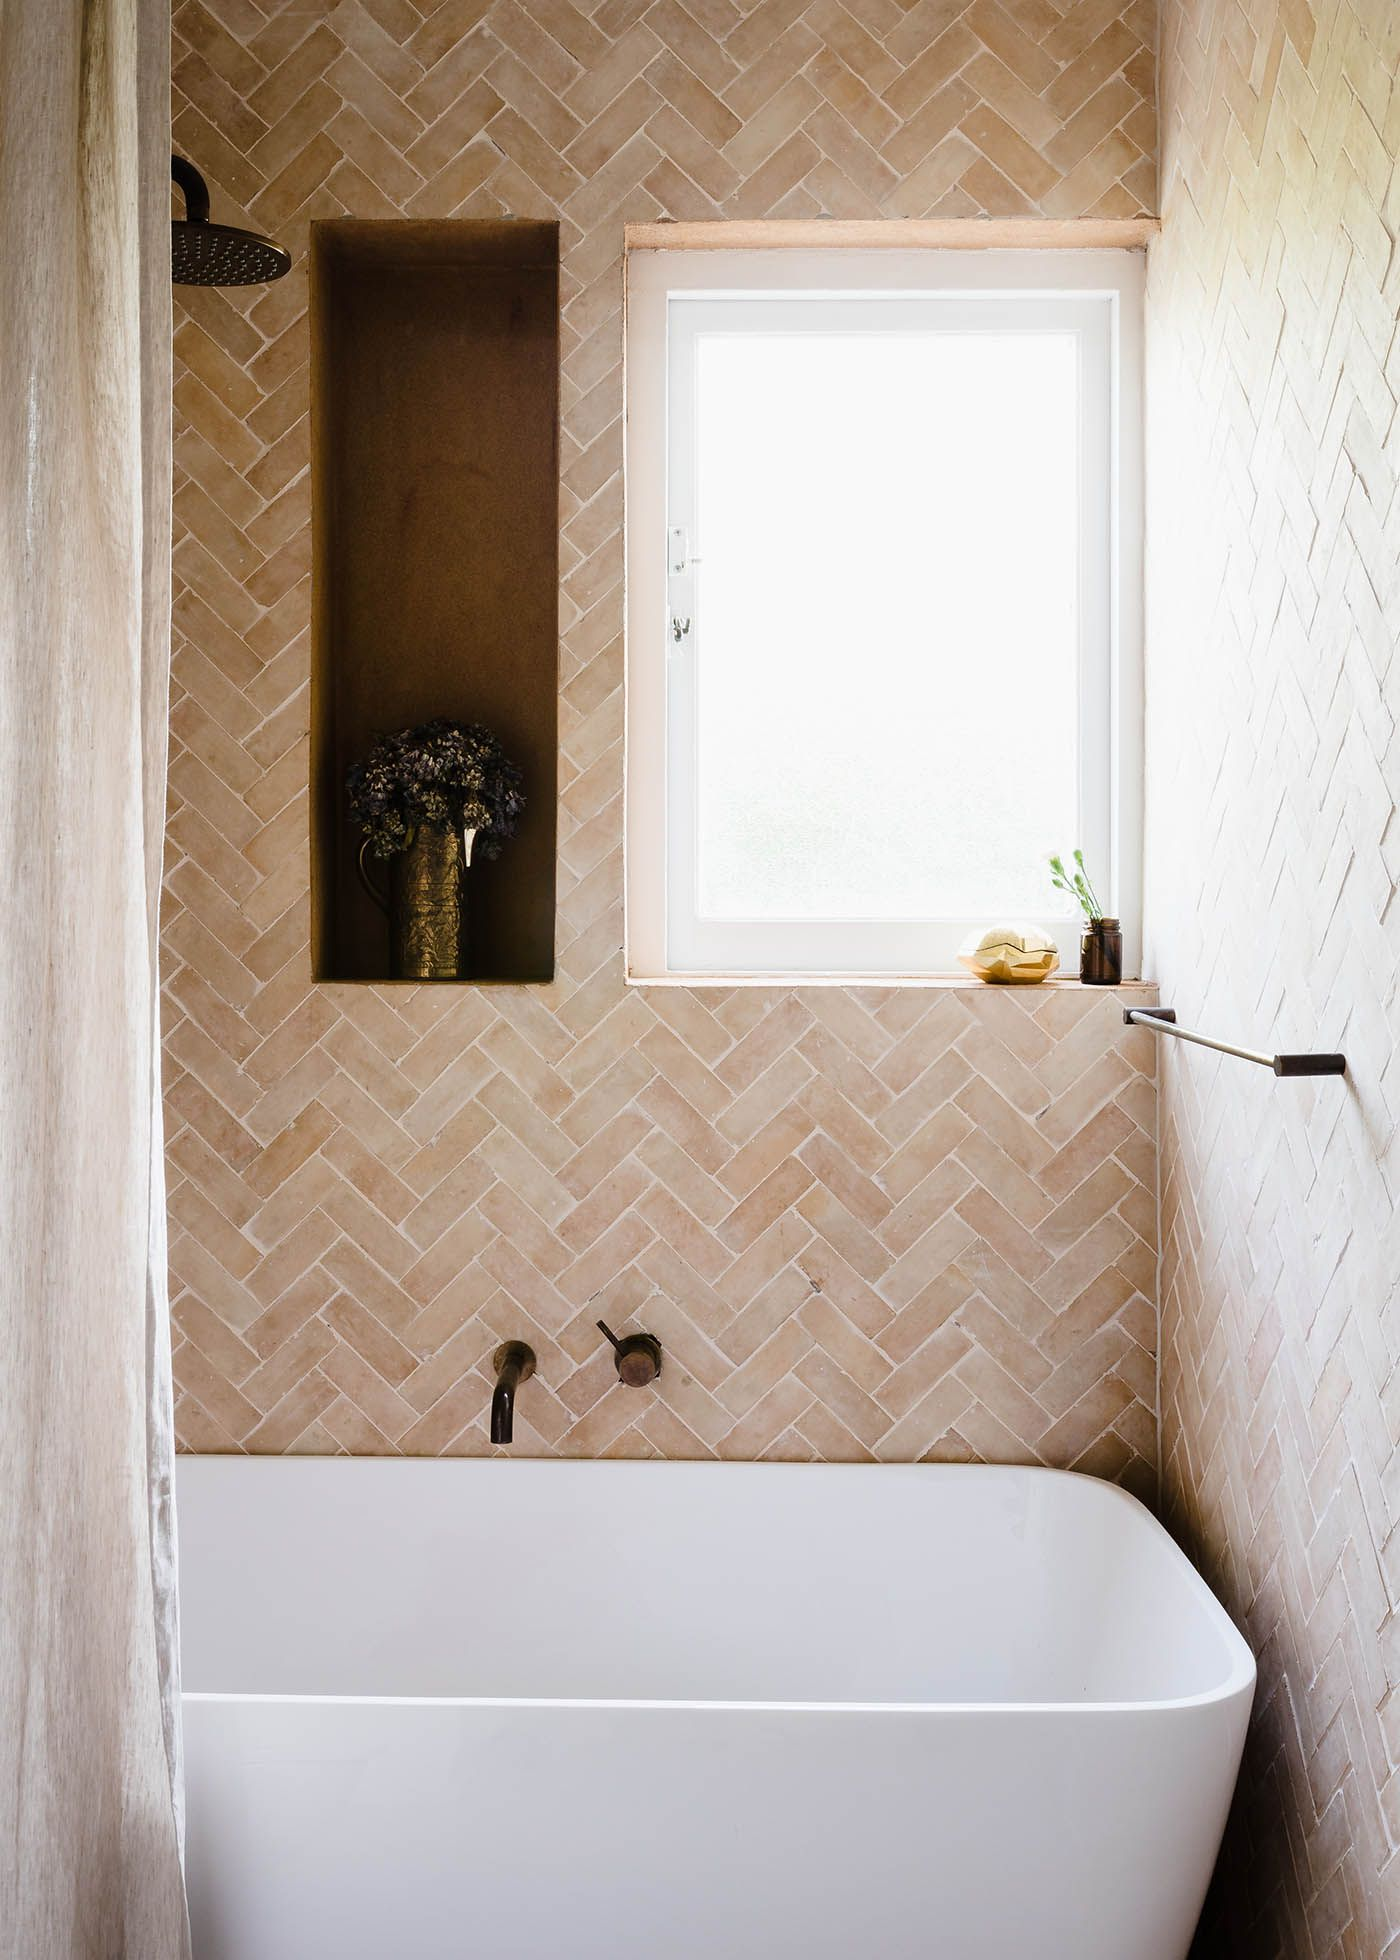 Gabbe interior tilesofezra georgia ezra home feature shower mosaic handmade zellige moroccan tiles available in australia and worldwide tiles of ezra promotes the sustainability of our high quality craftsmanship and dailygadgetfo Images